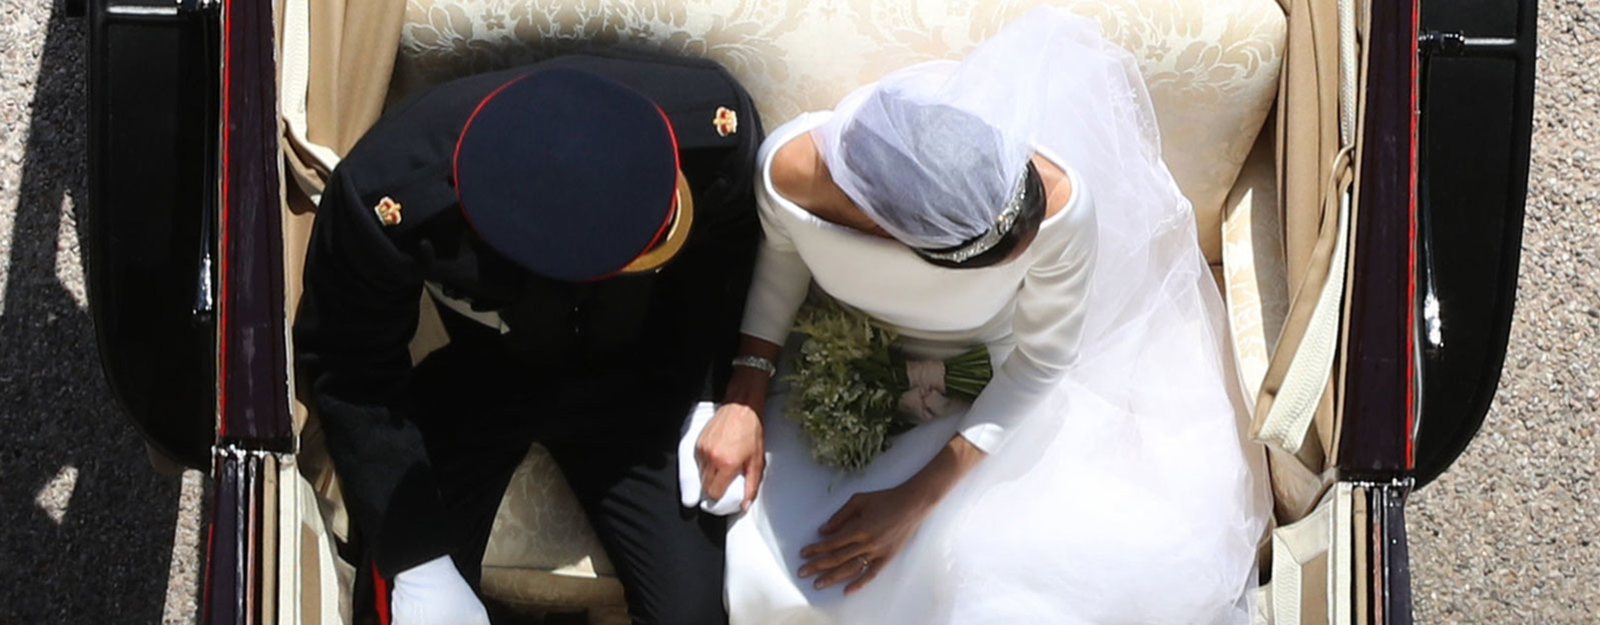 The Duke and Duchess of Sussex holding hands in the carriage following their wedding